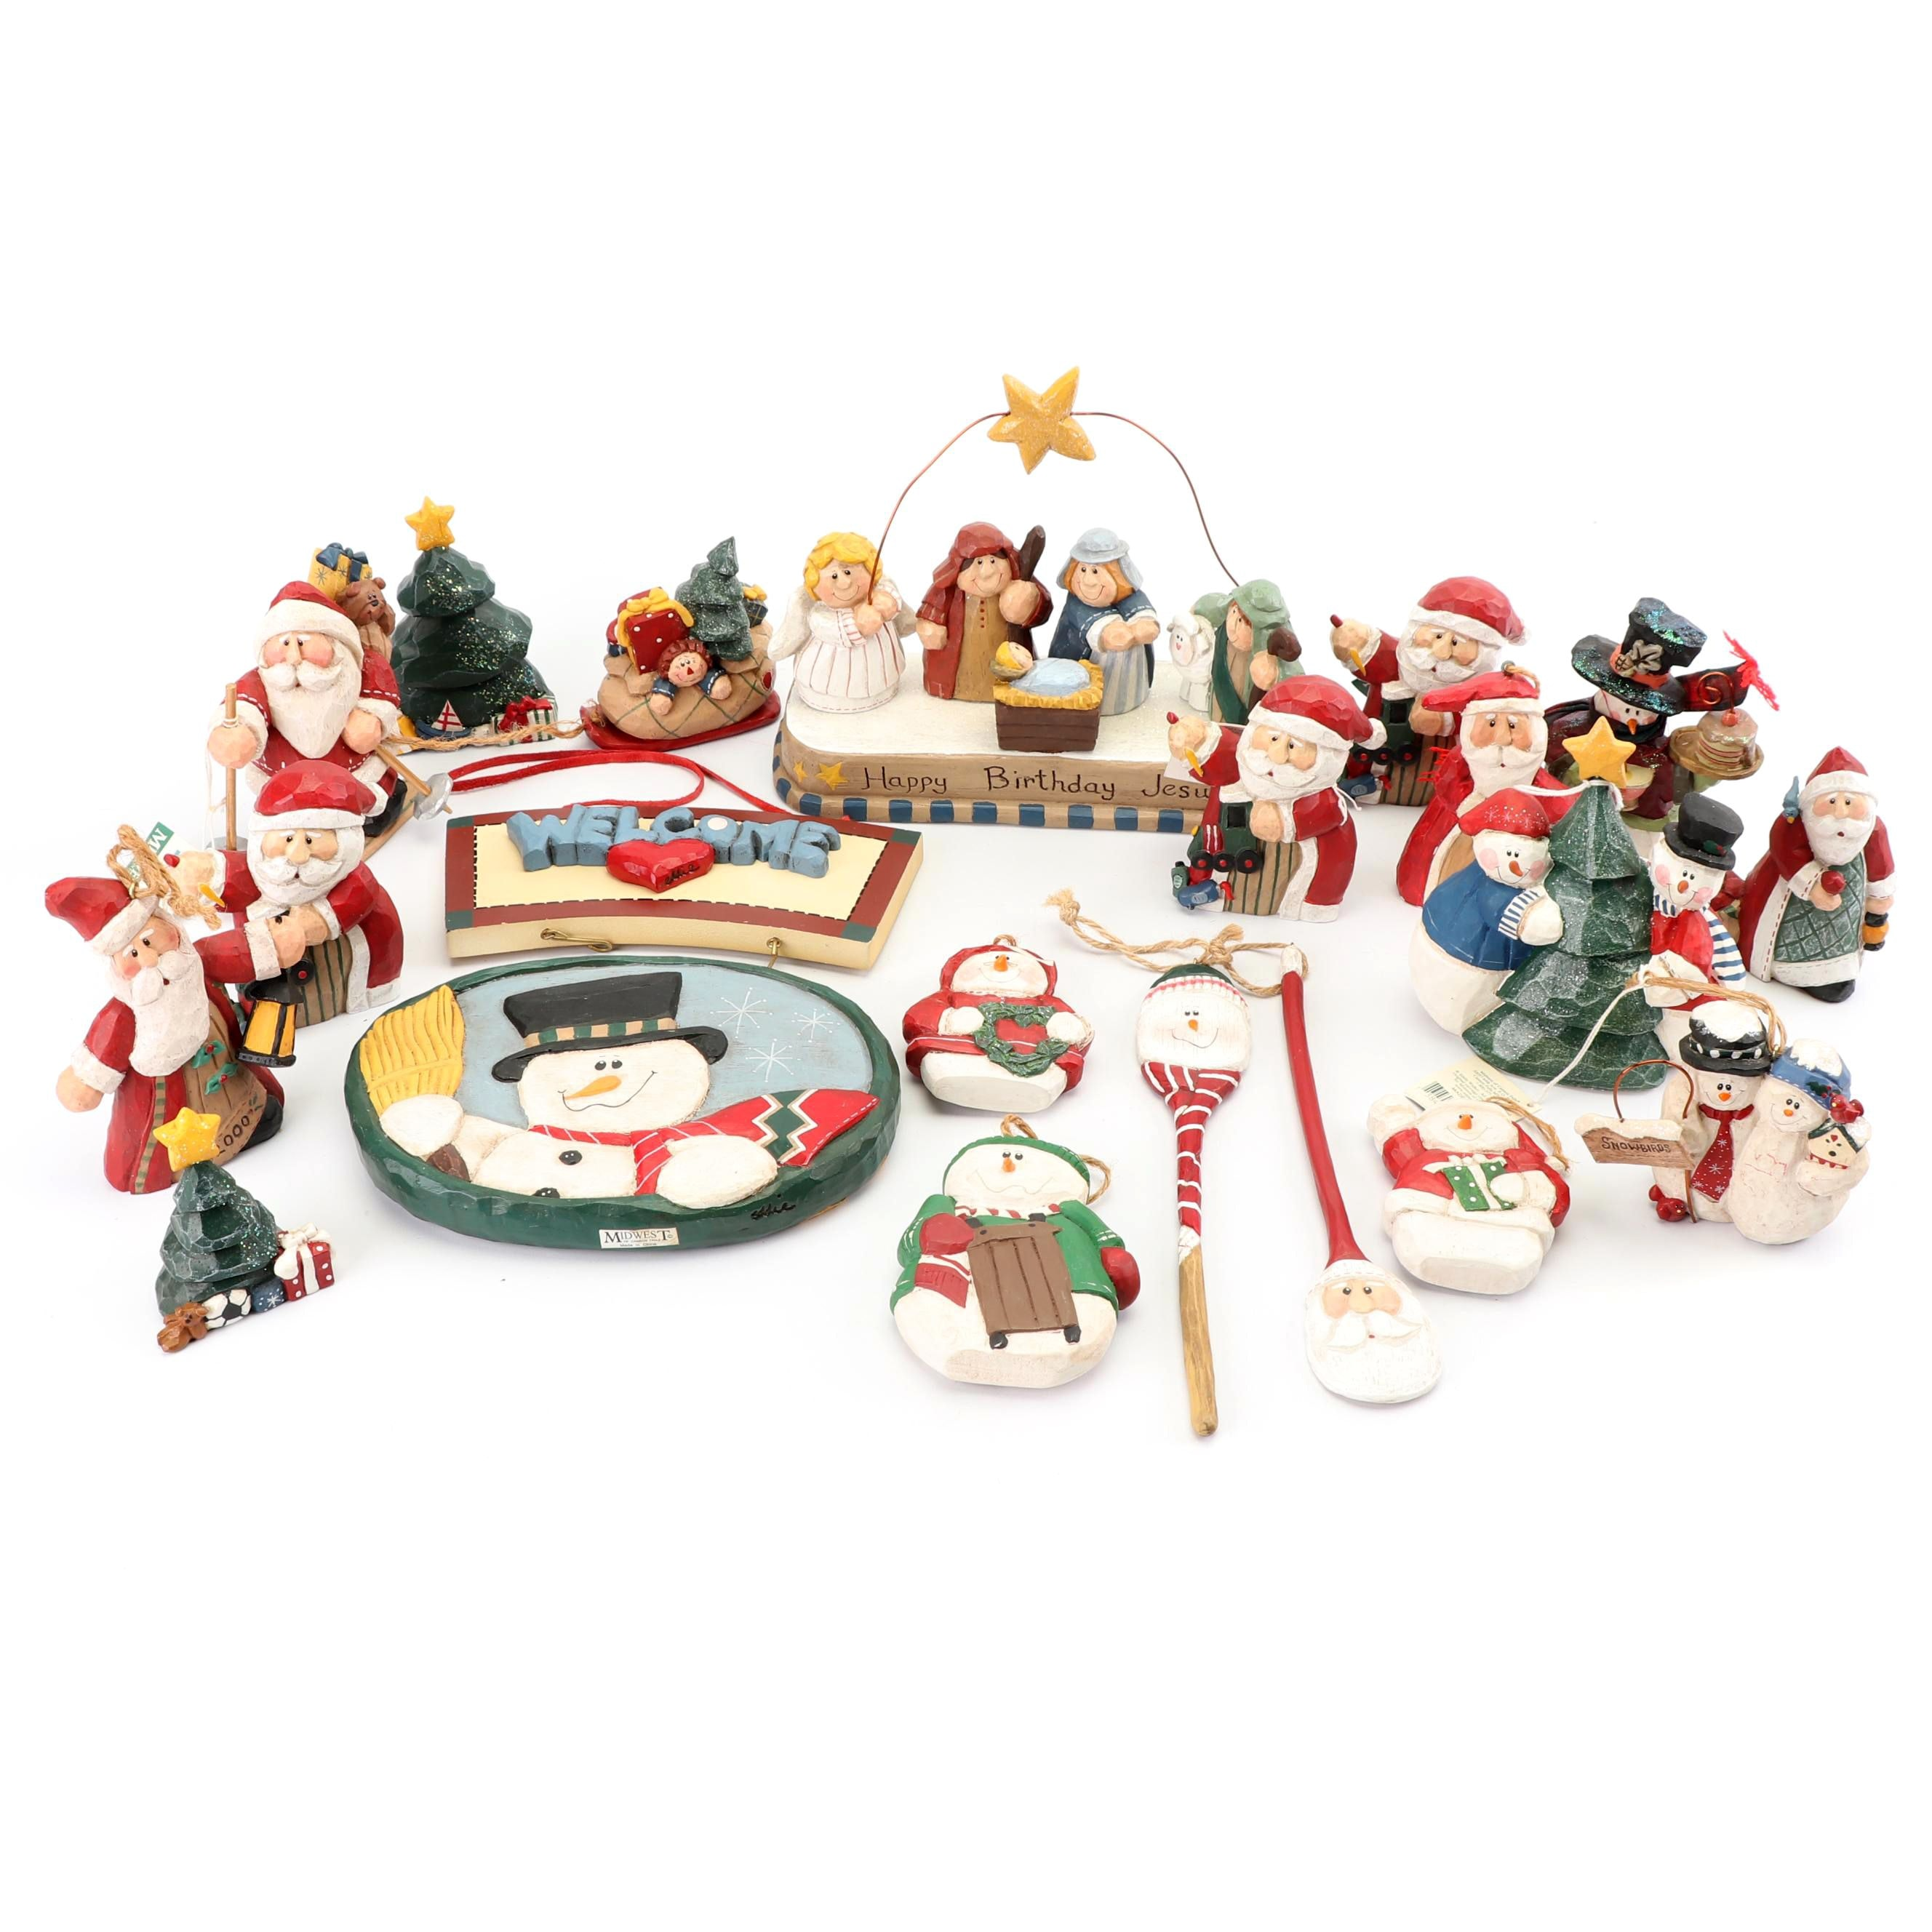 Christmas Ornaments and Table Decor